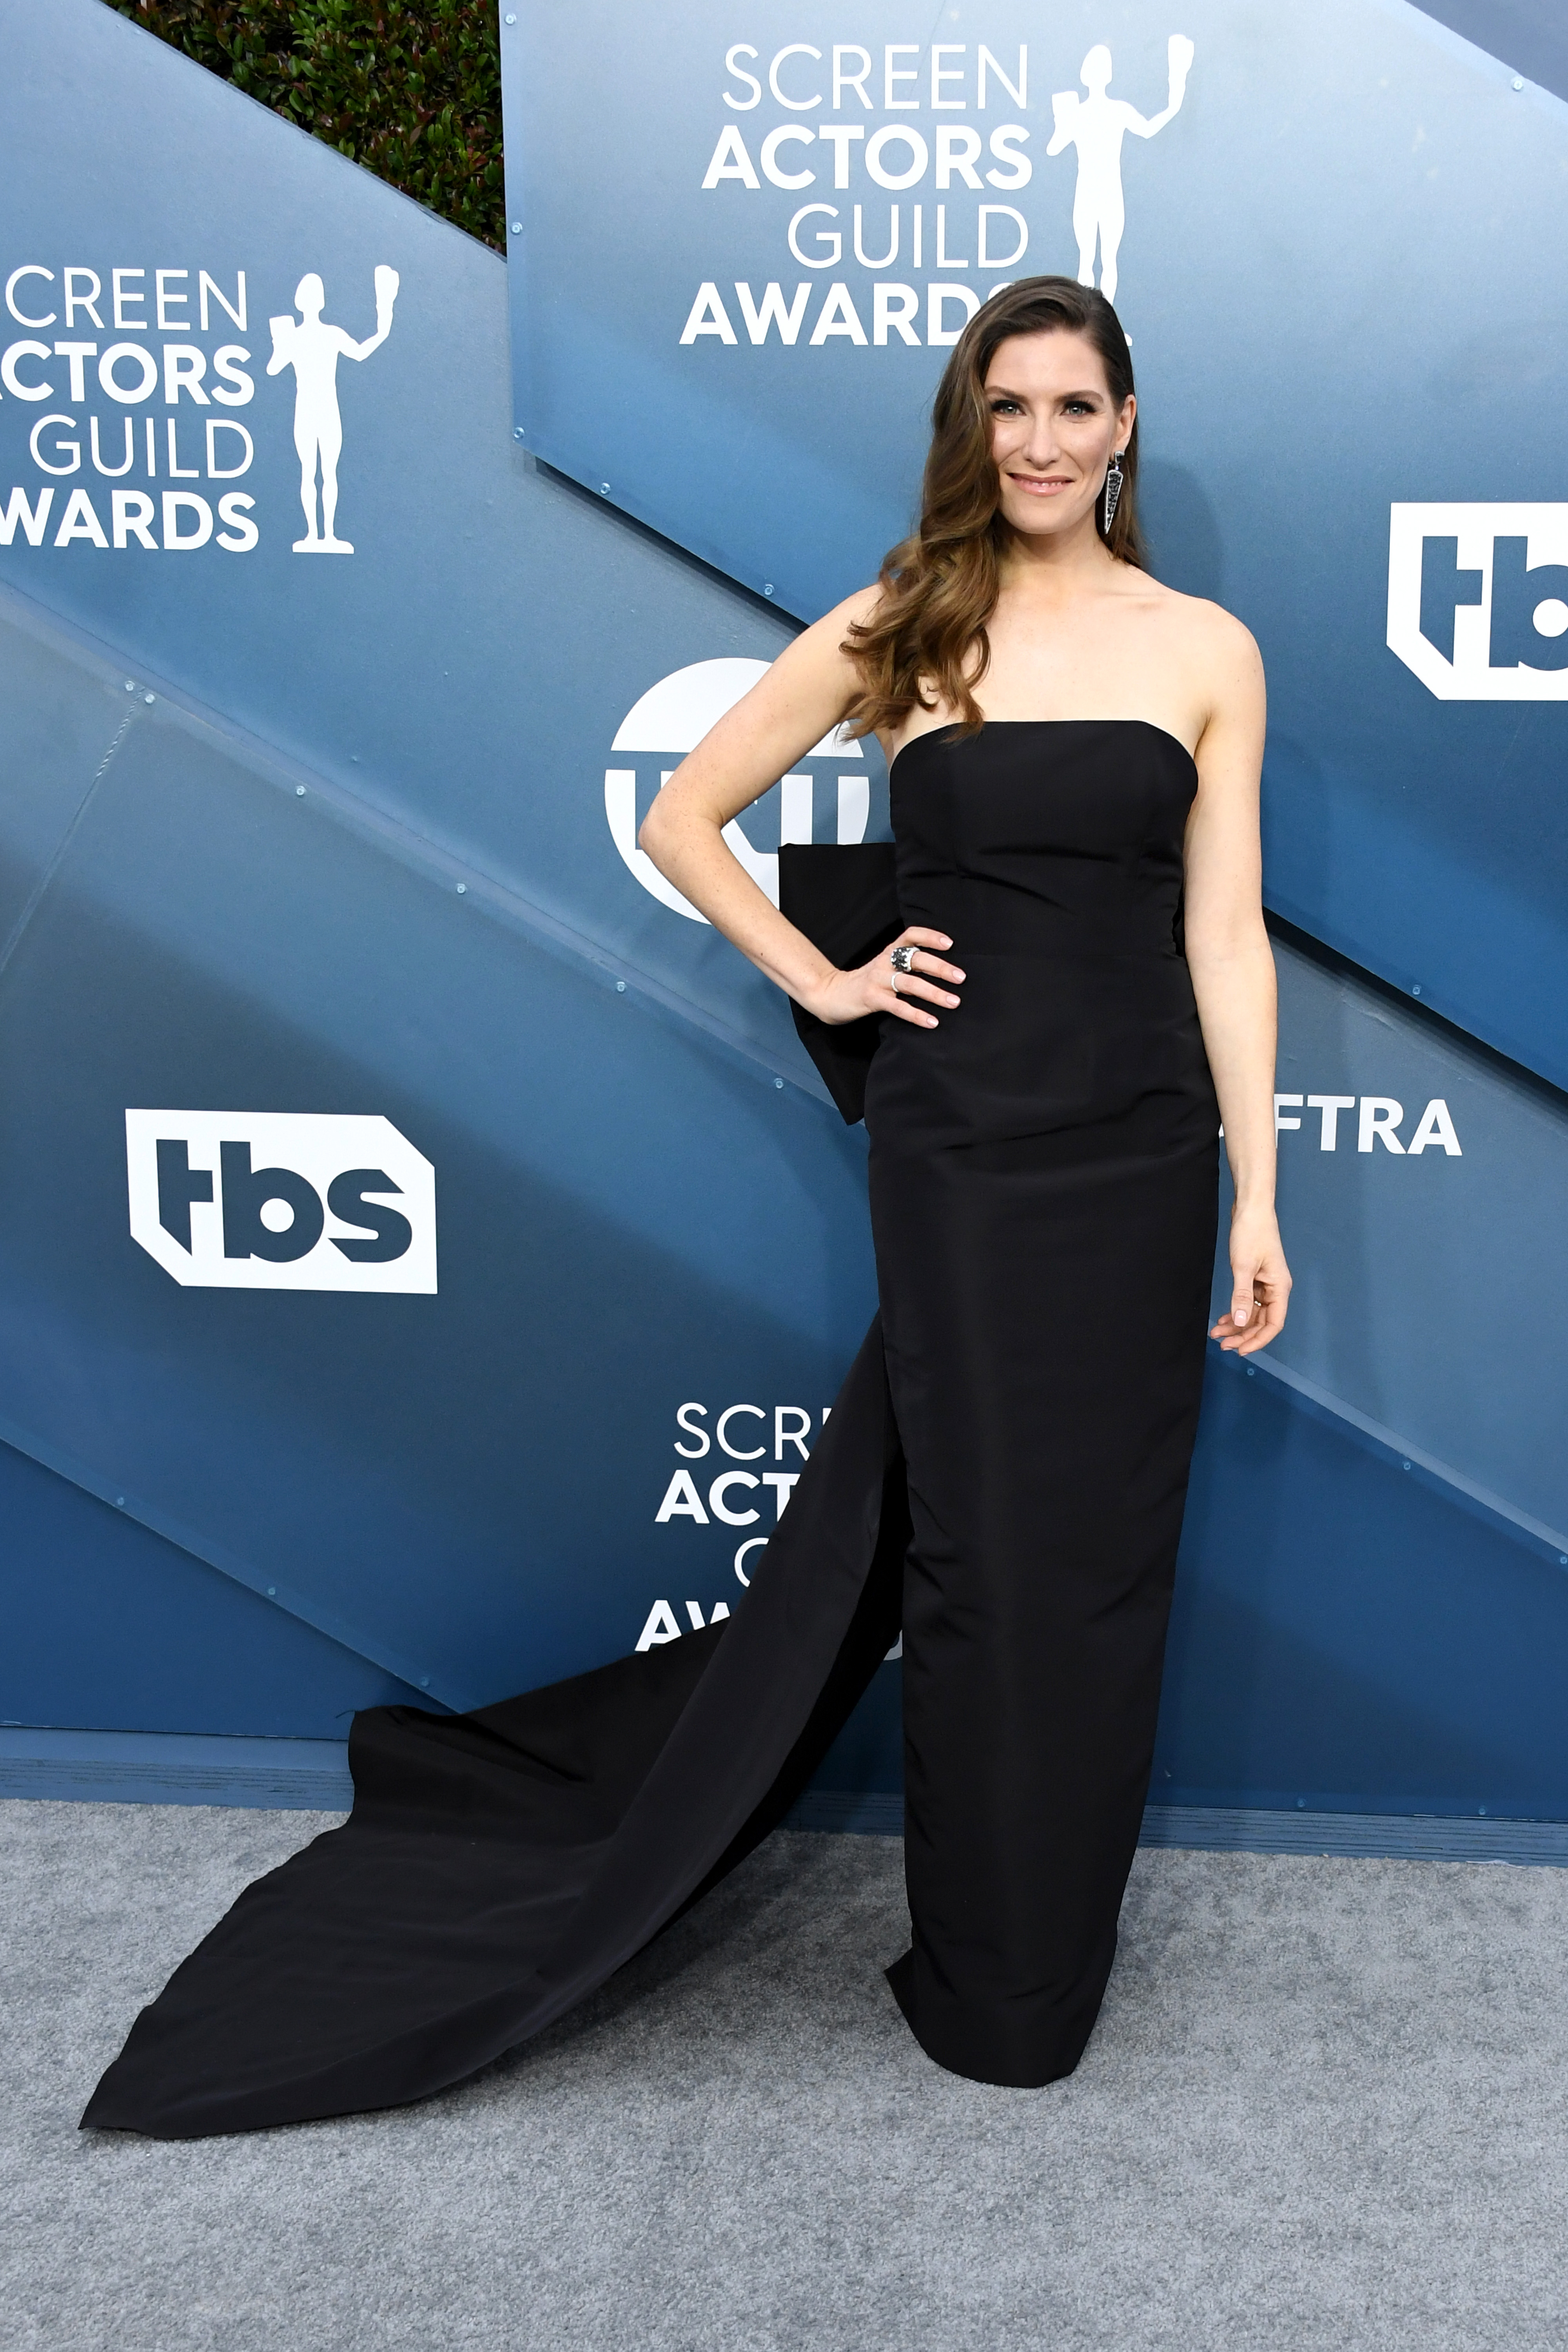 LOS ANGELES, CALIFORNIA - JANUARY 19: Sarah Levy attends the 26th Annual Screen ActorsGuild Awards at The Shrine Auditorium on January 19, 2020 in Los Angeles, California. (Photo by Jon Kopaloff/Getty Images)